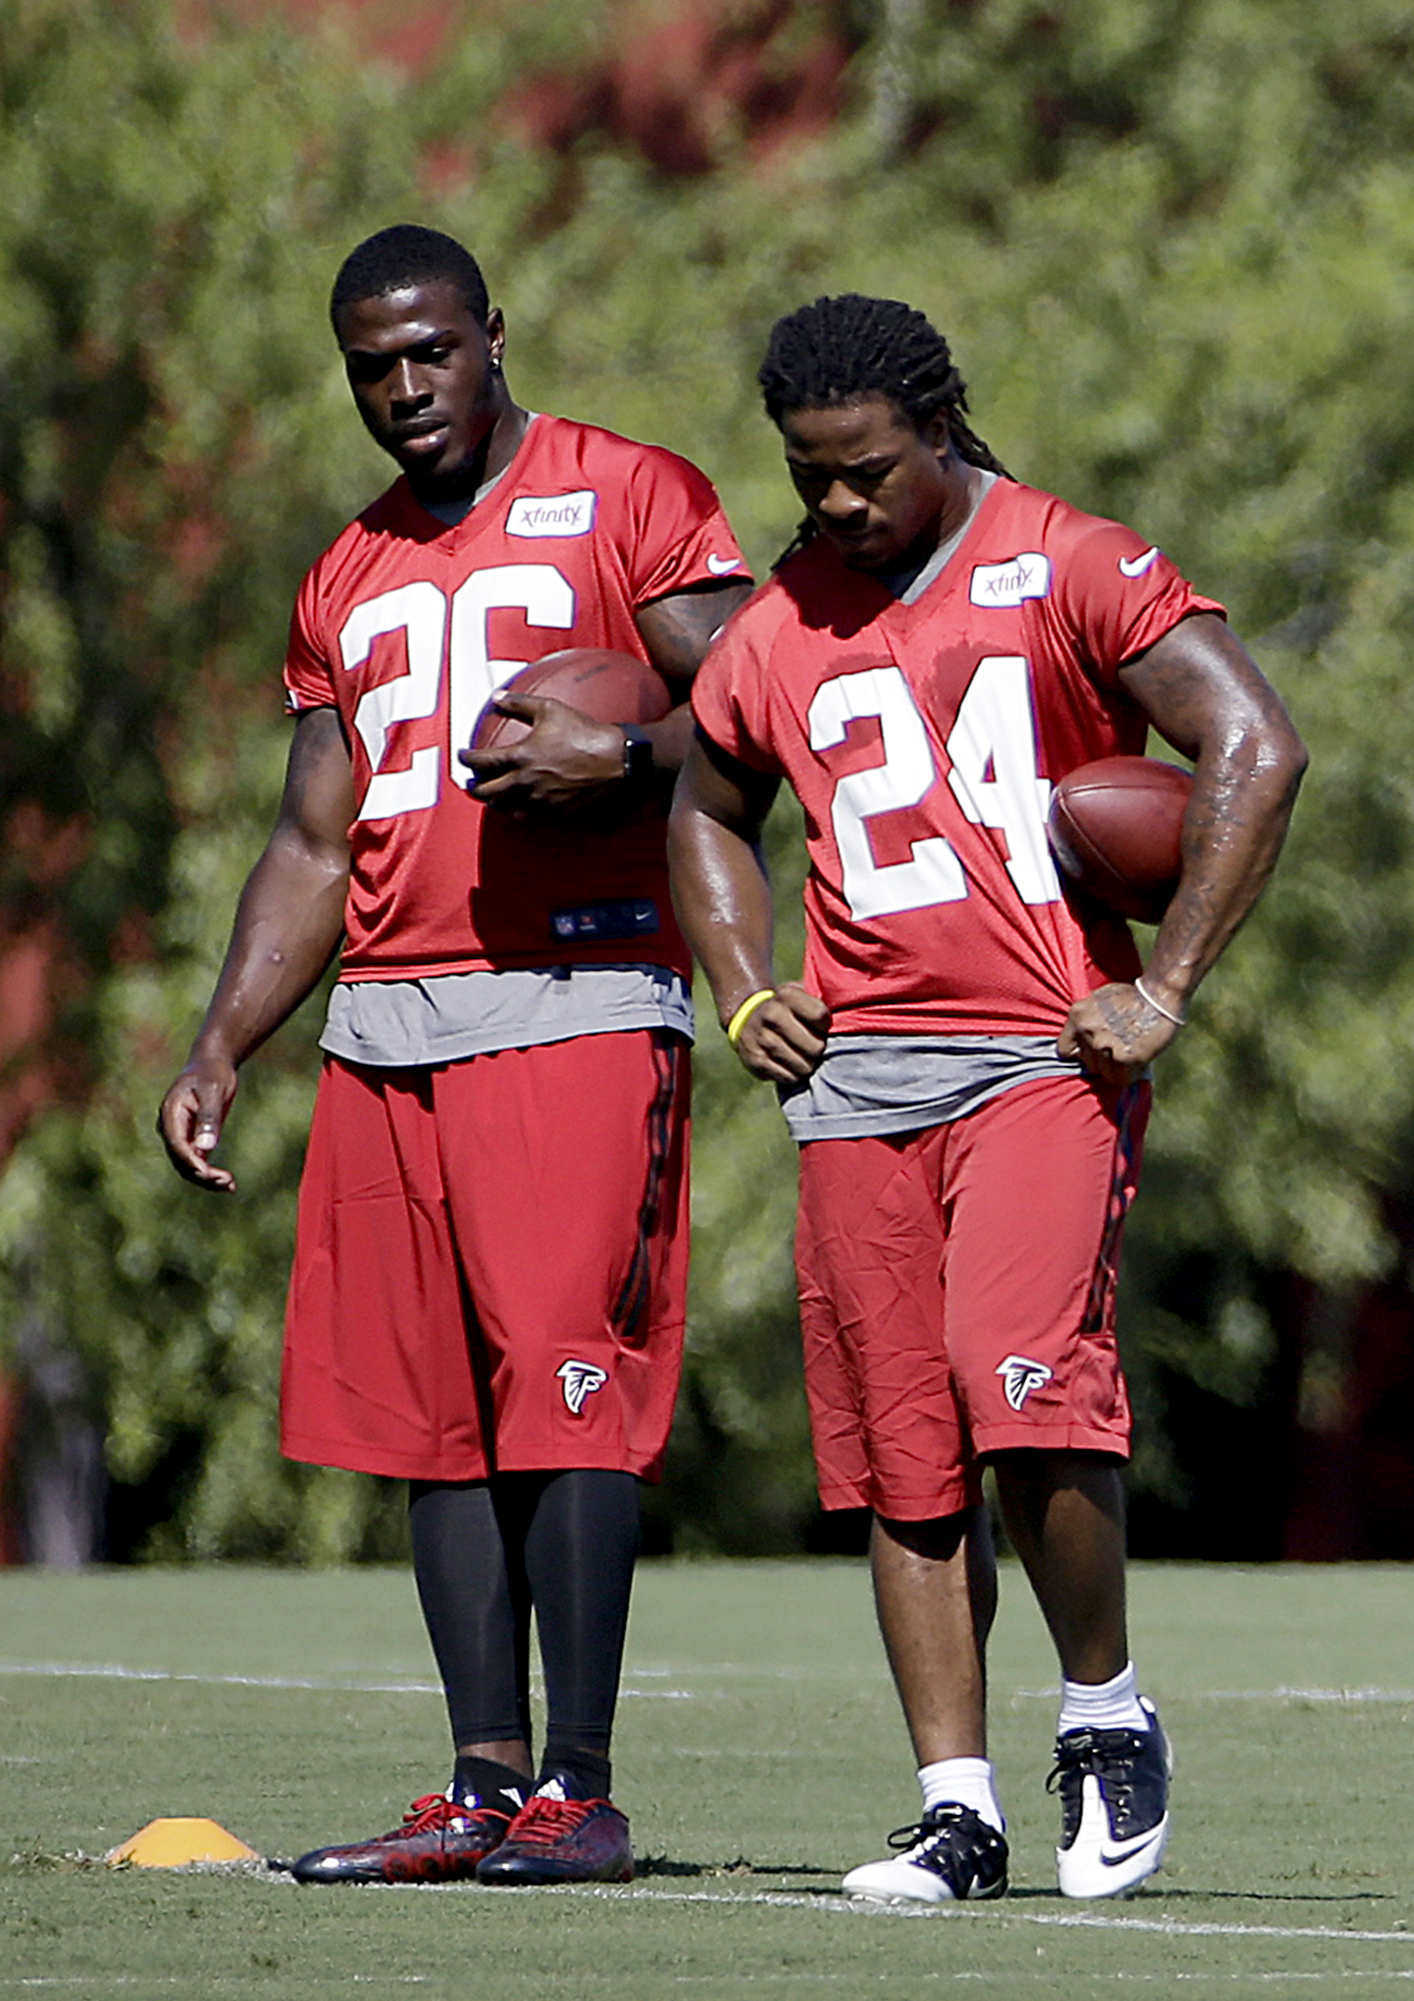 FILE - In this Aug. 12, 2015, file photo, Atlanta Falcons' Tevin Coleman, left, and Devonta Freeman walk on the field during NFL football training camp in Flowery Branch, Ga. Second-year running back Tevin Coleman has played a bigger role through two game